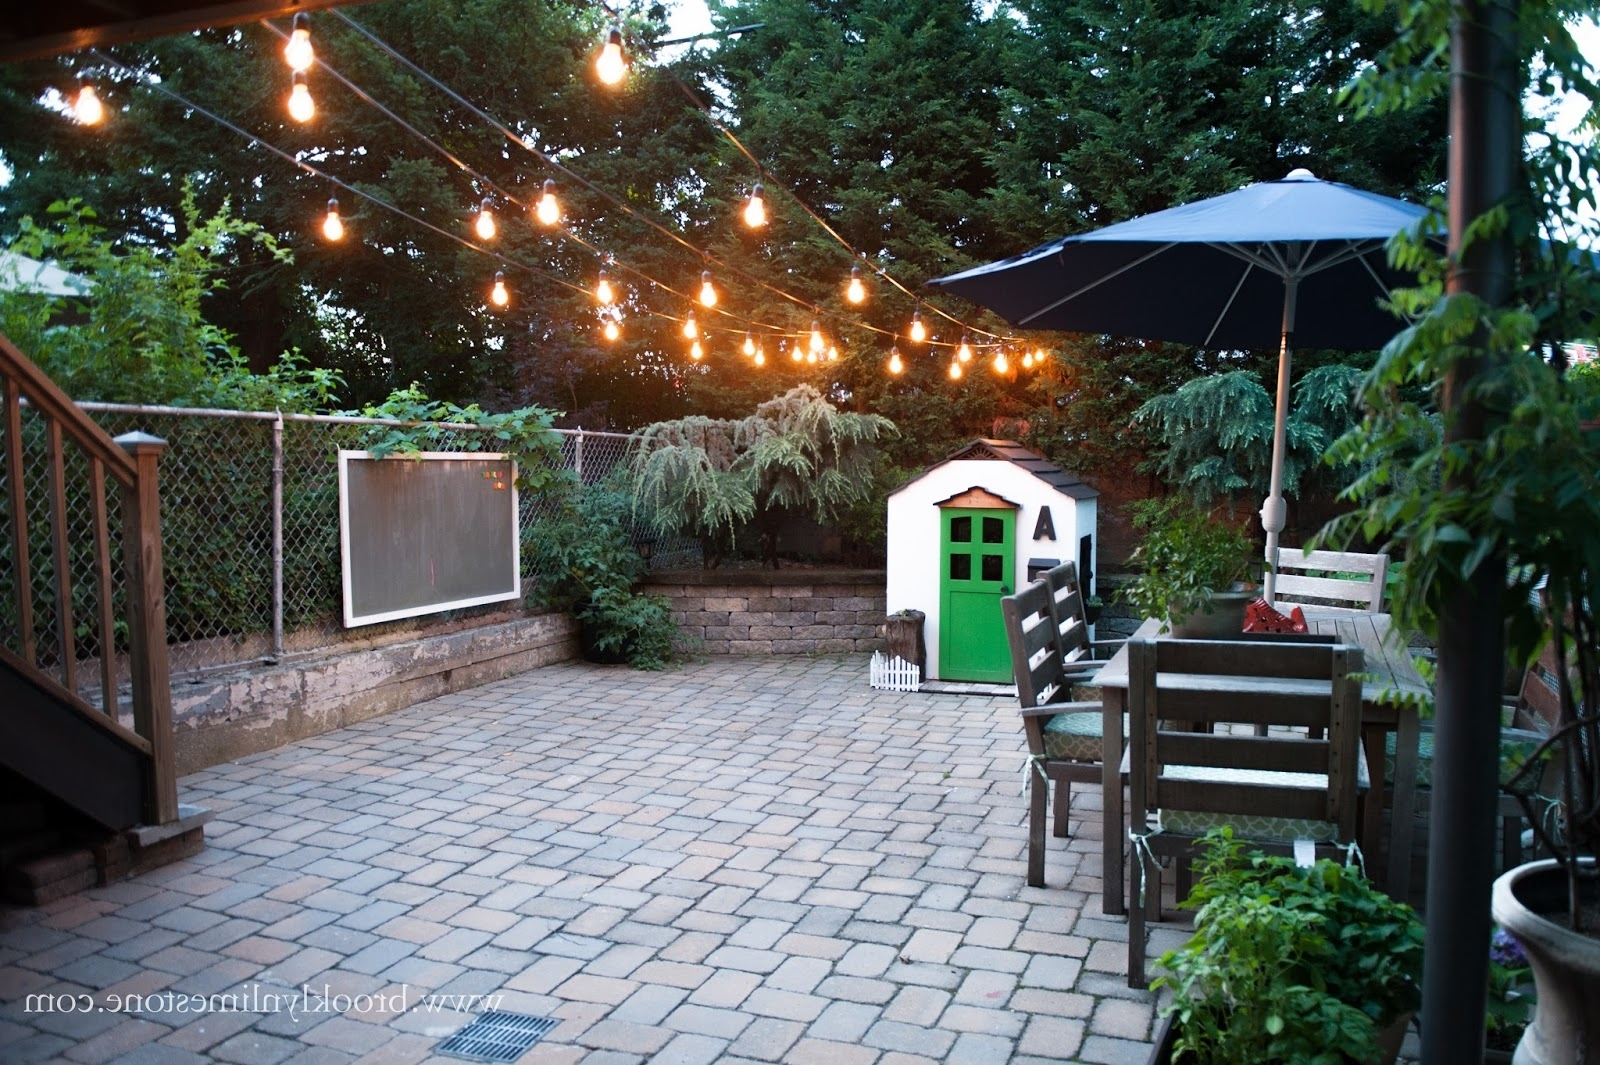 Brooklyn Limestone Regarding Most Recently Released Garden And Outdoor String Lights (View 2 of 20)